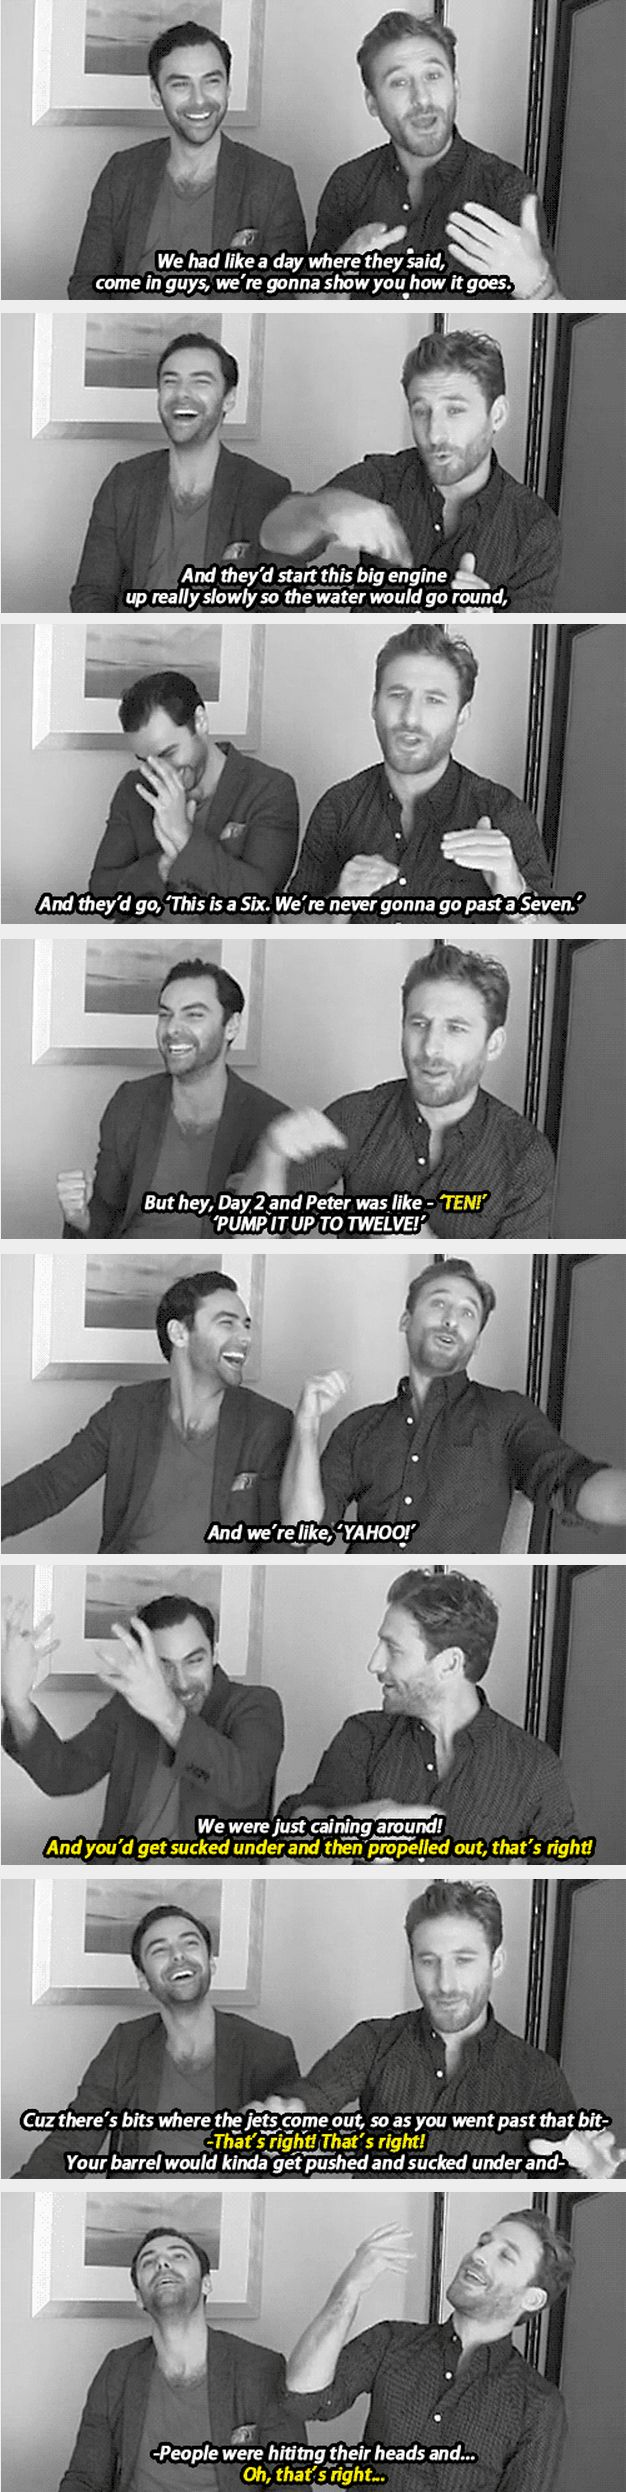 Dean O'Gorman and Aidan Turner on filming the barrel sequence<---they seem like they had a really good time almost dying...can't say I wouldn't...